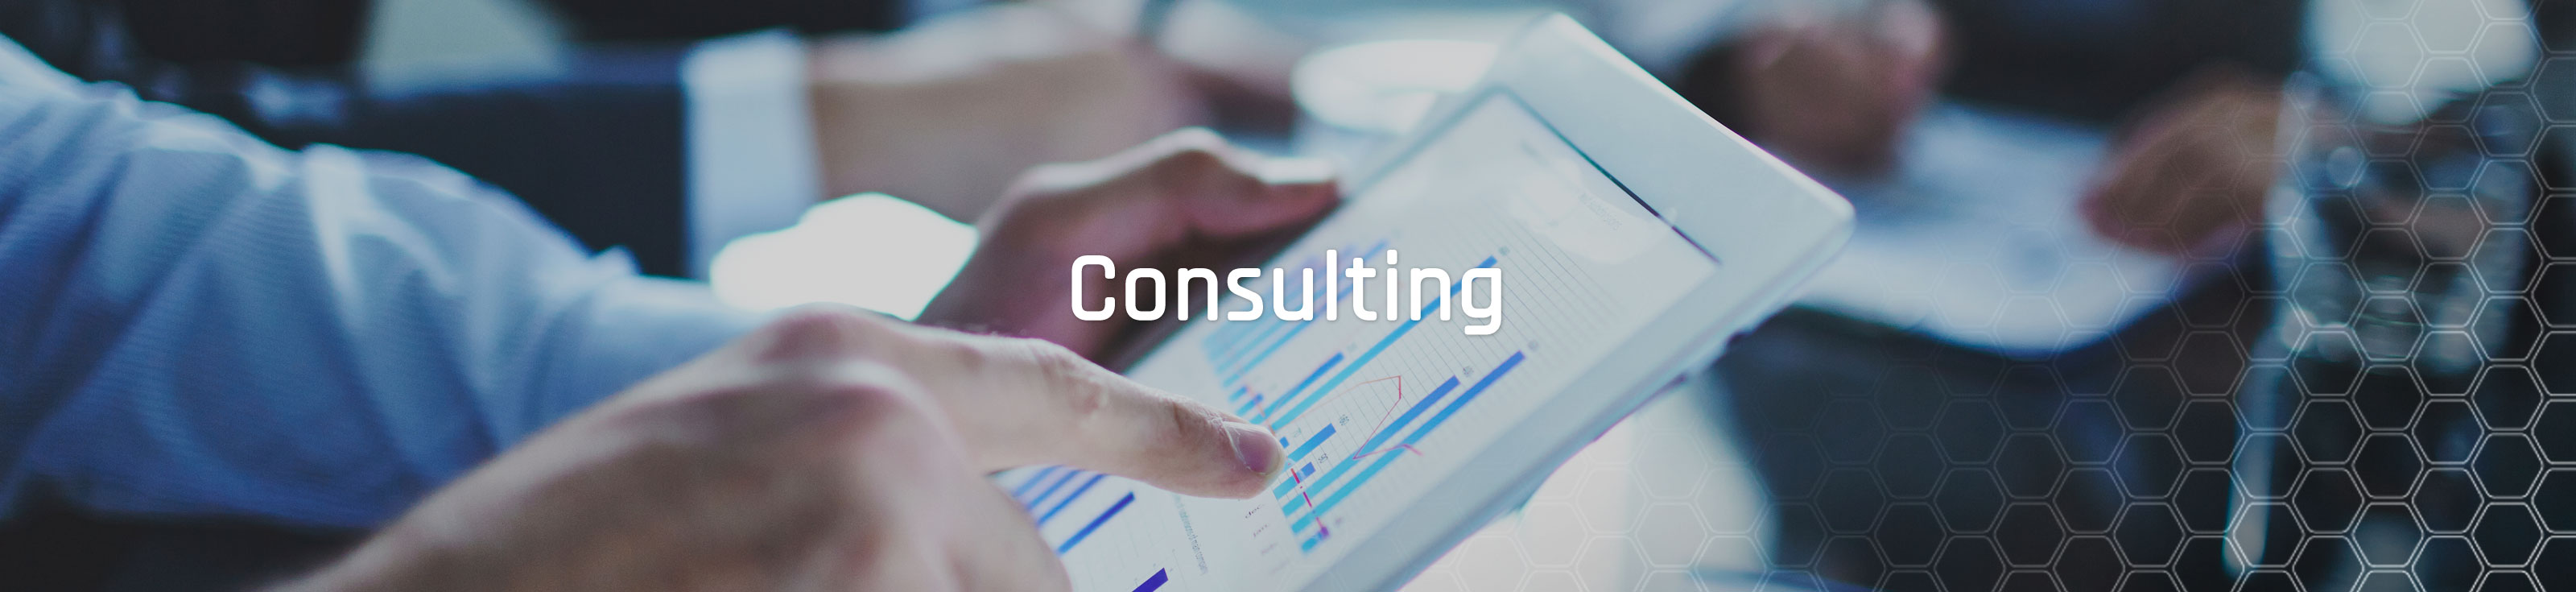 slider_consulting